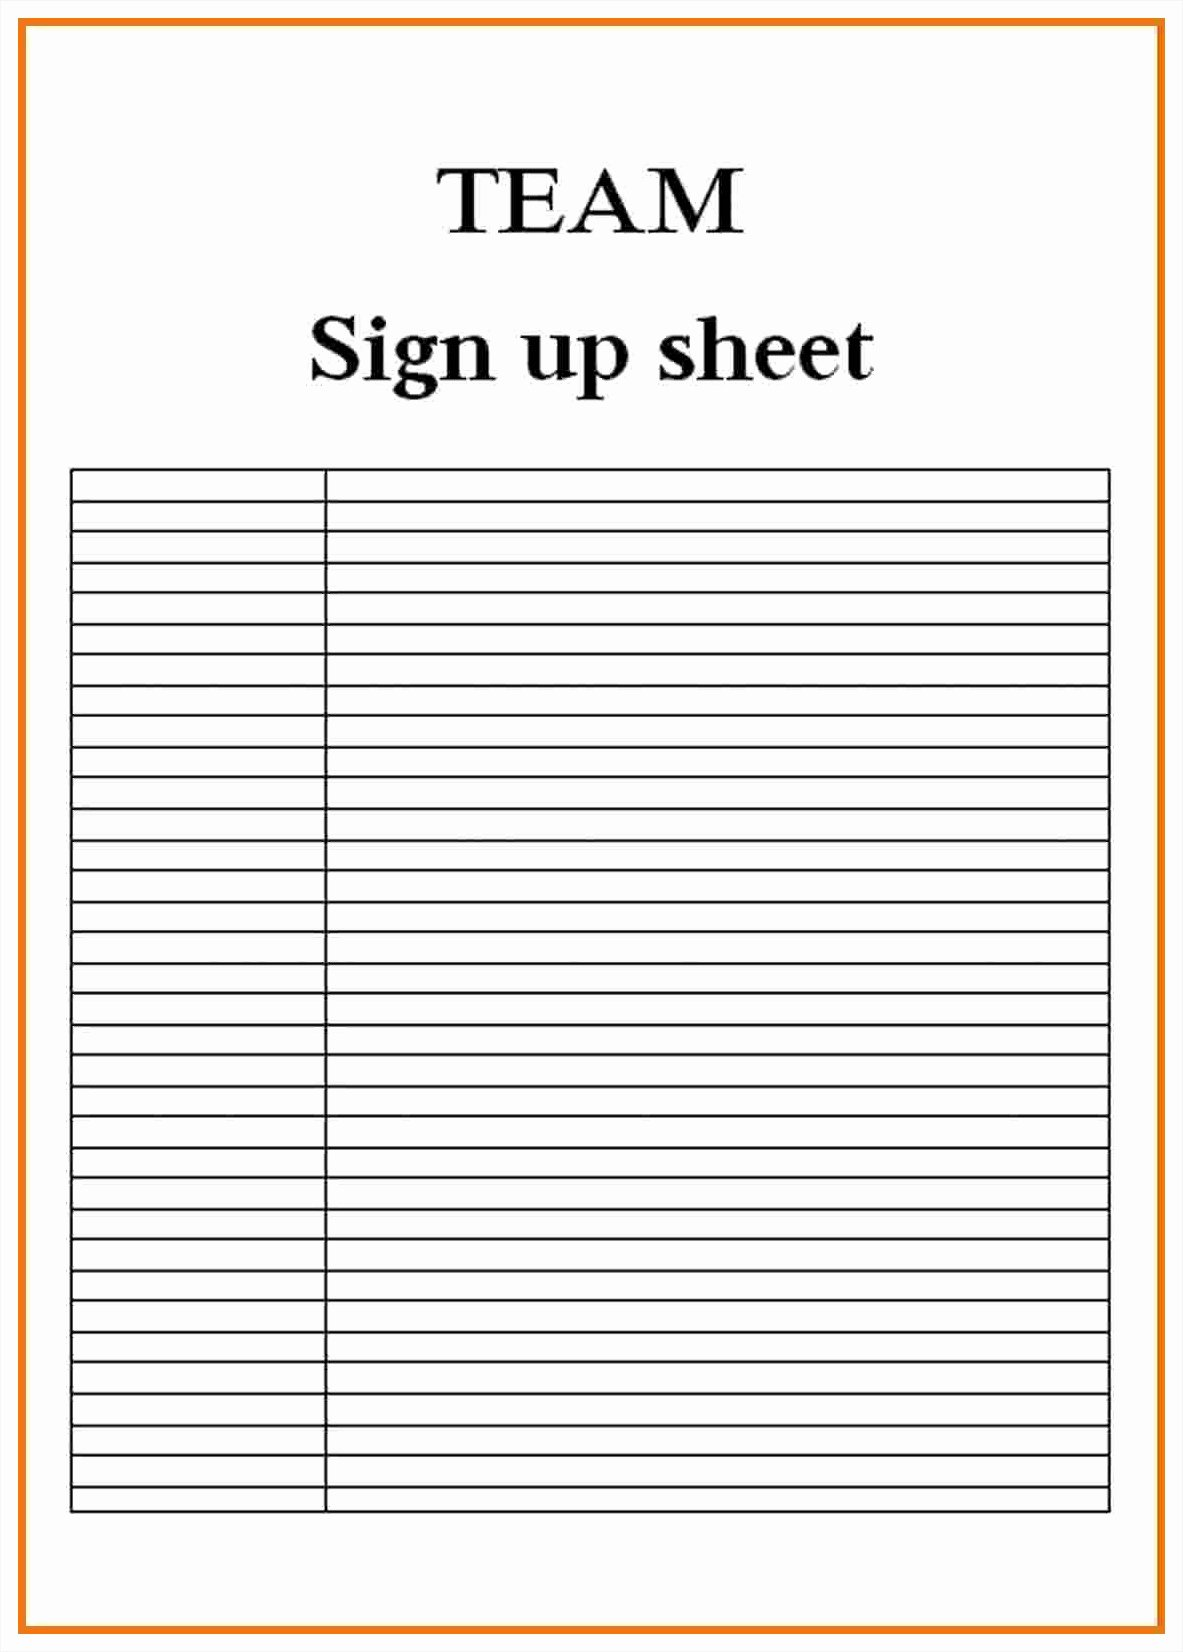 Sign In Sheet Template Doc Fresh Blank Sign Up Sheet Example Mughals